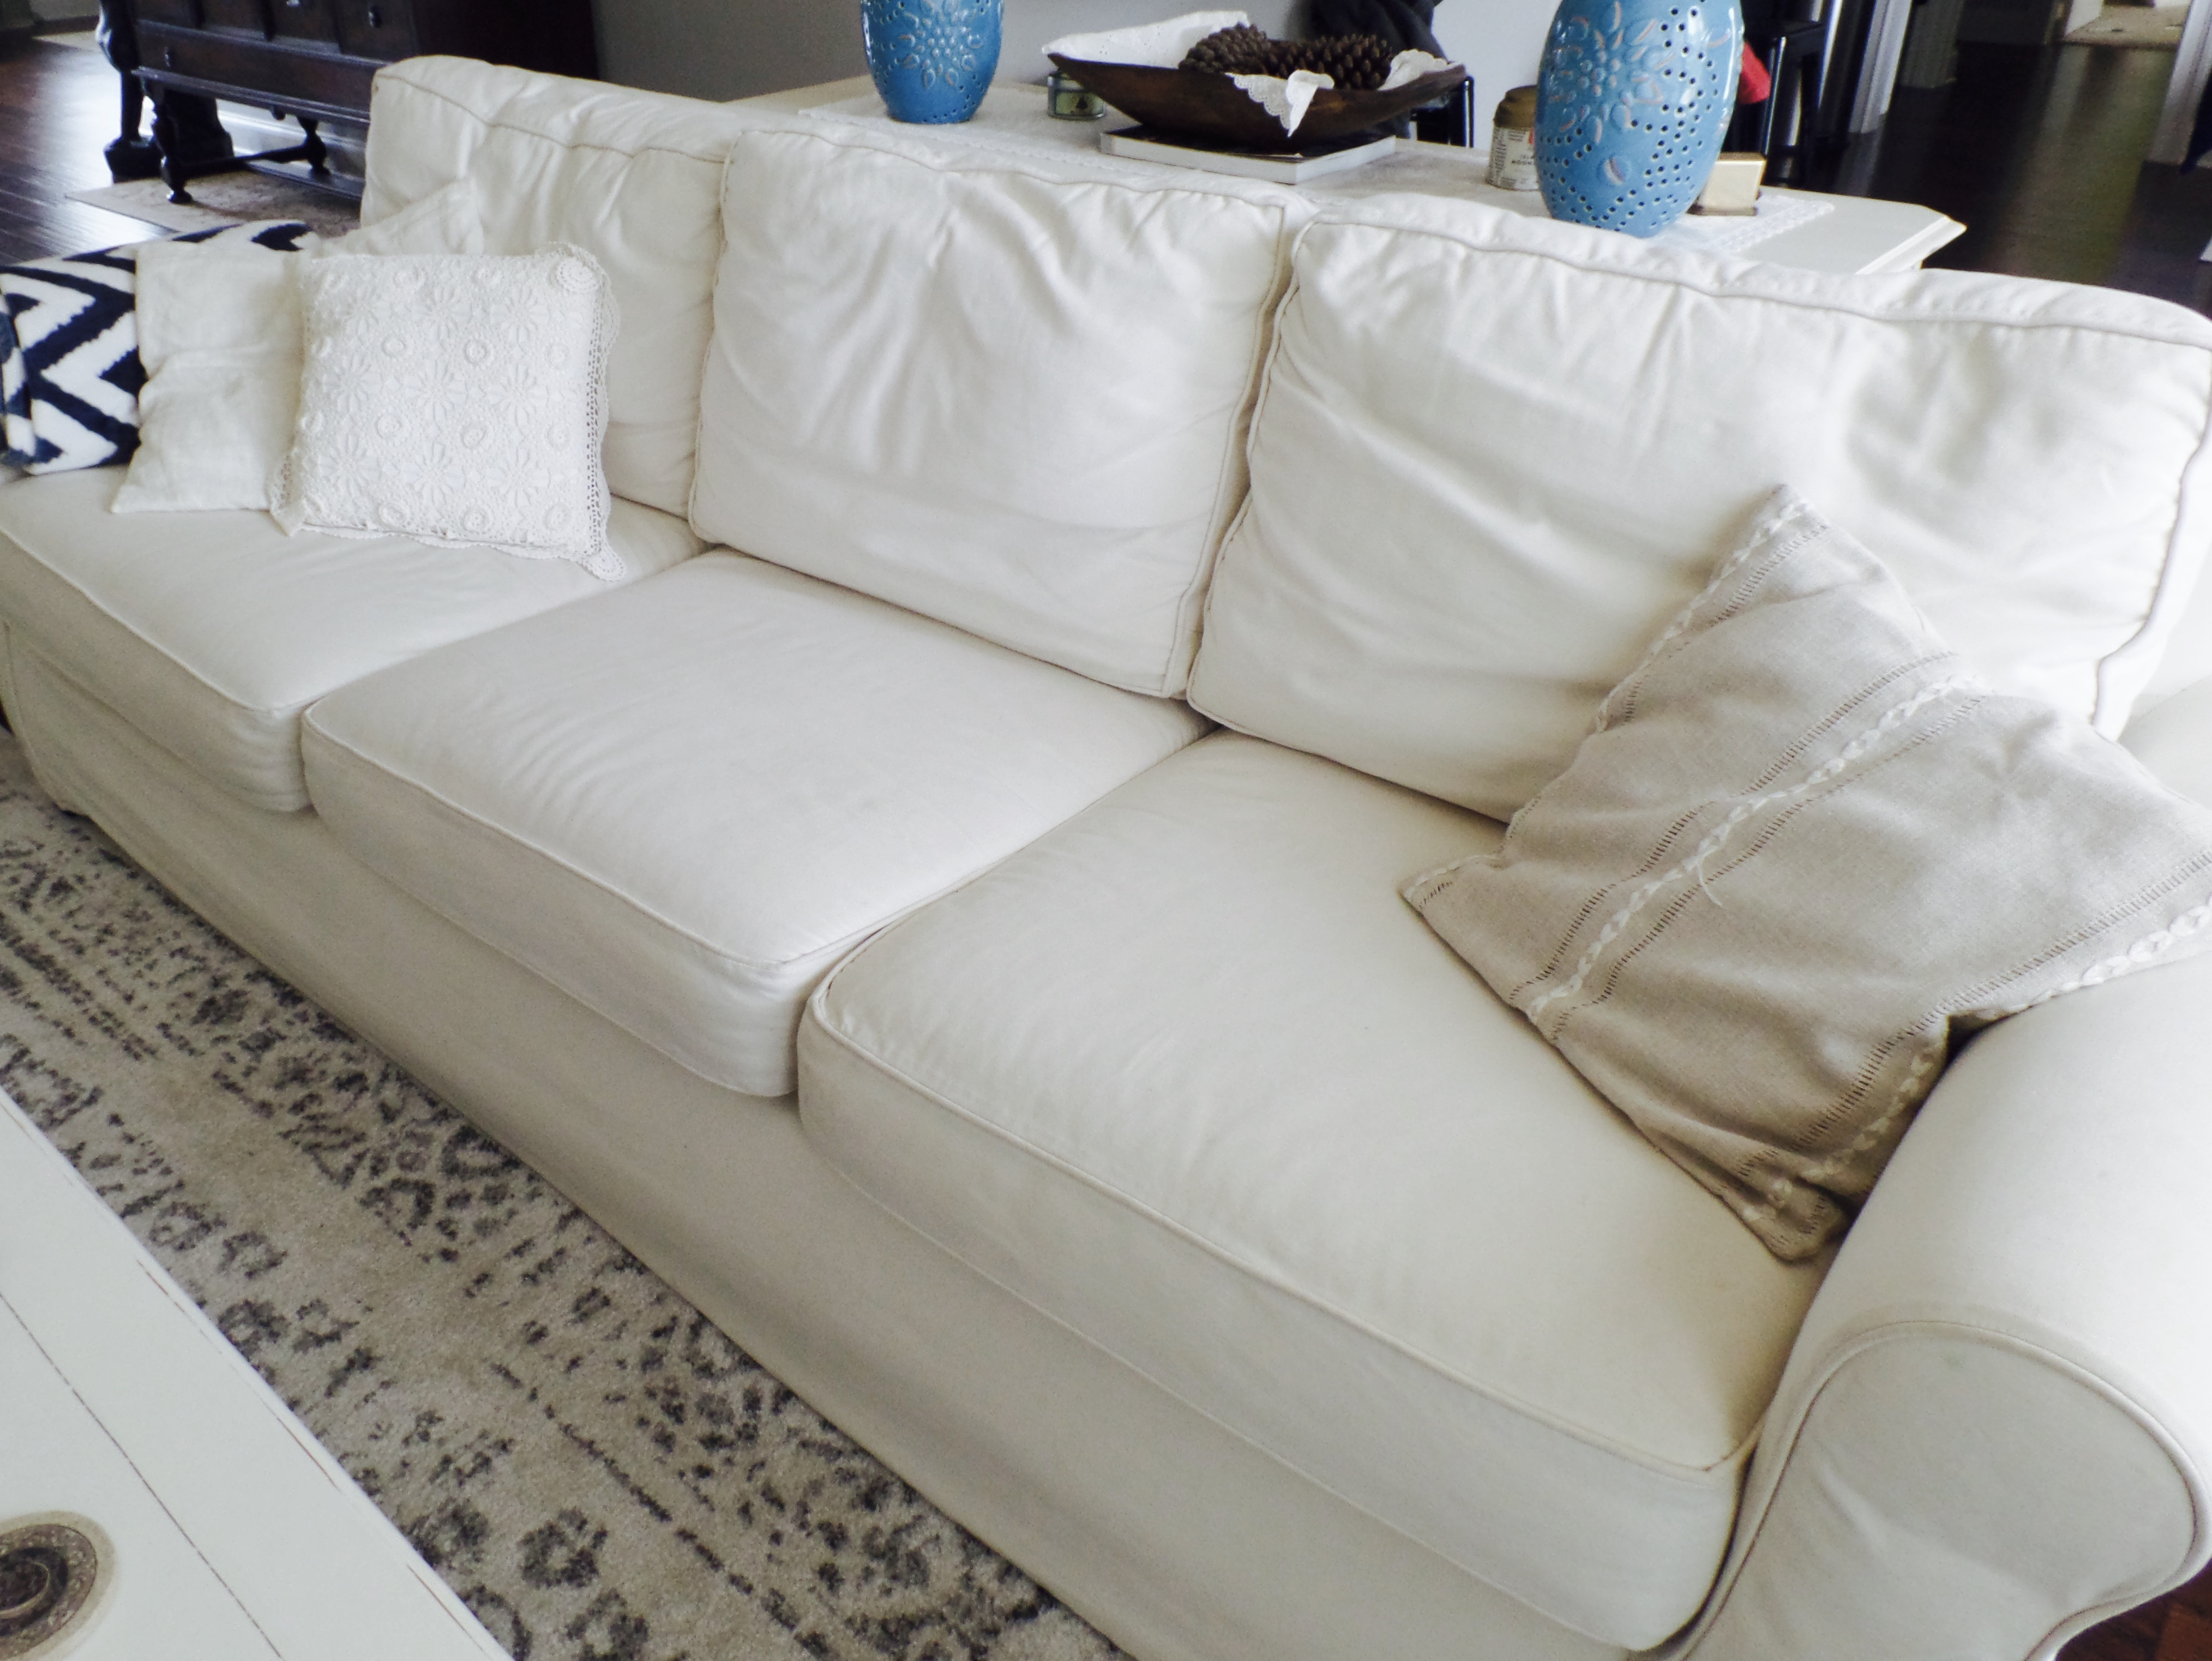 Sofa Outlet Paisley Couch Comparison Pottery Barn Vs Ikea